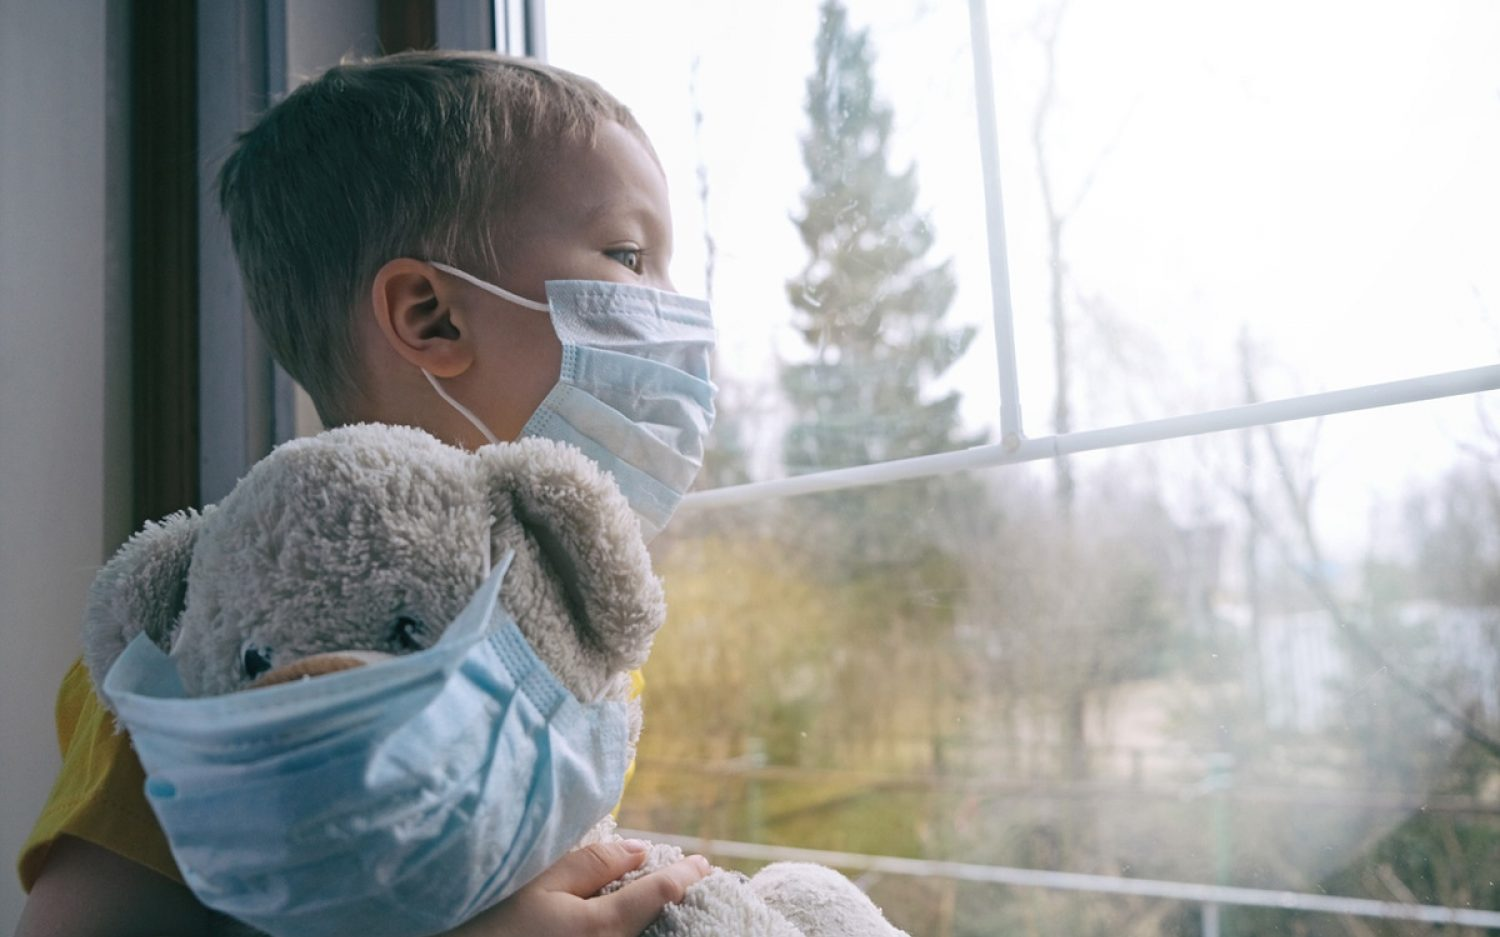 Fostering in a pandemic